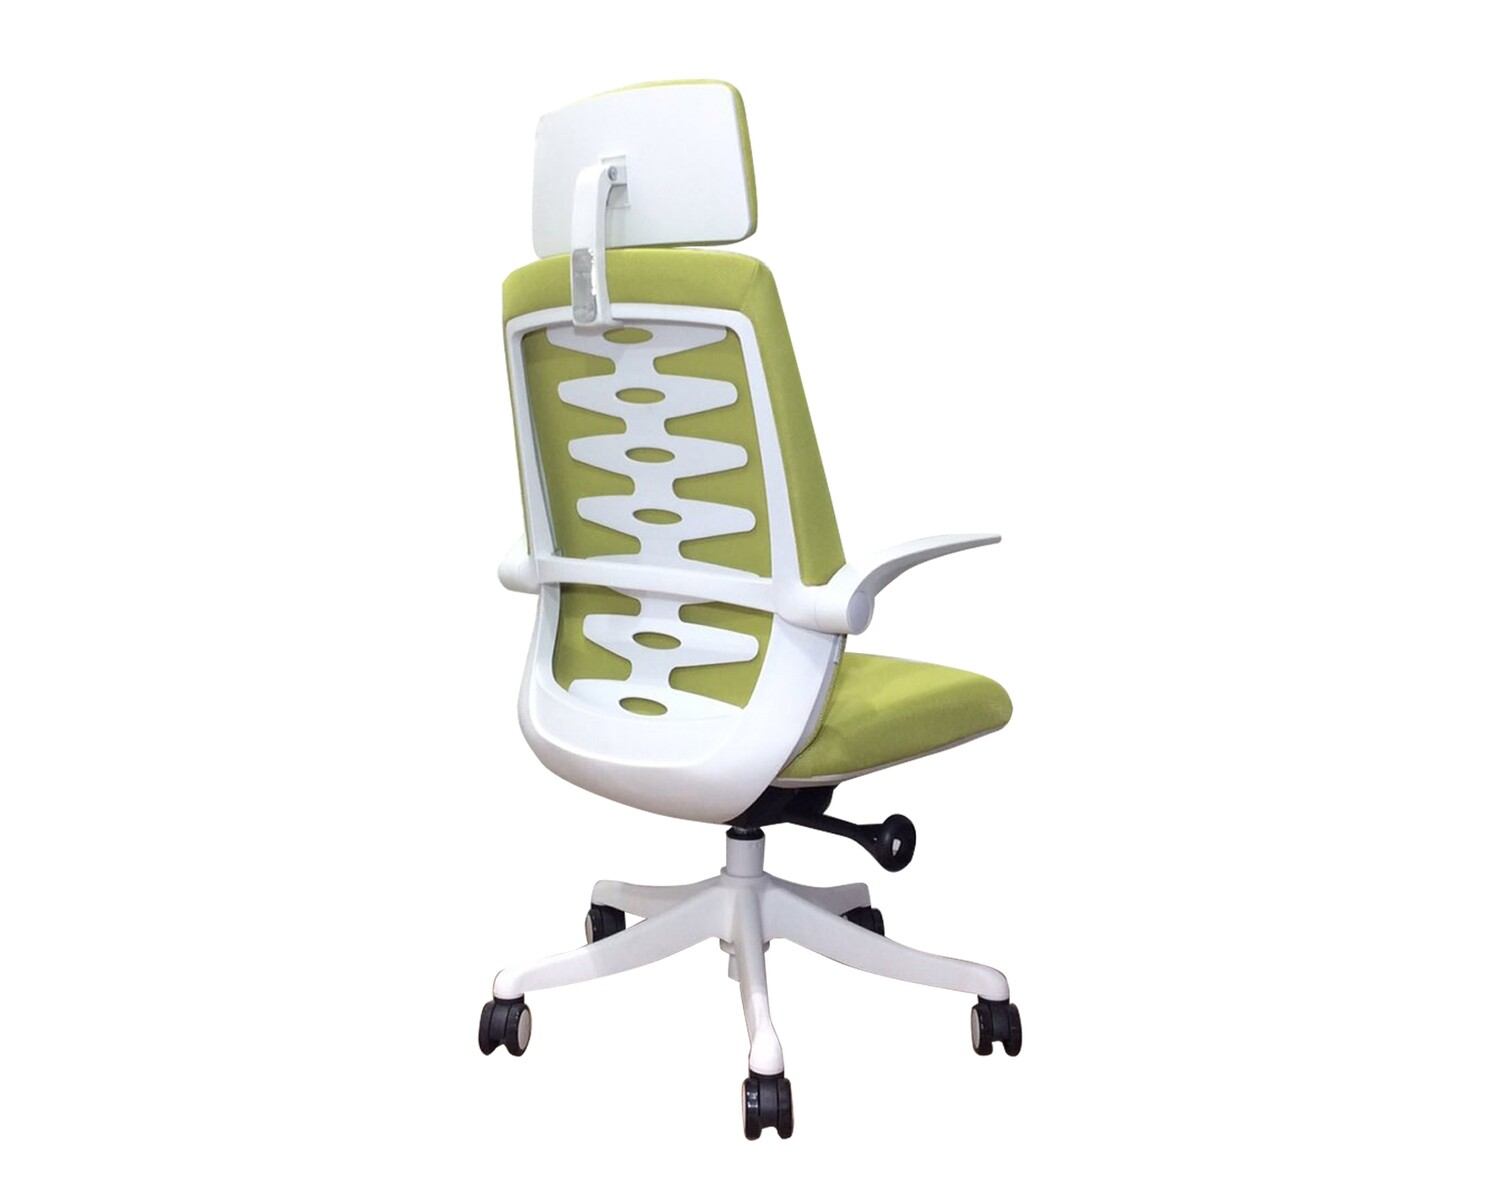 Ofix Premium-X17 Bionic Spine Support Office Chair (Blue, Green, Grey)